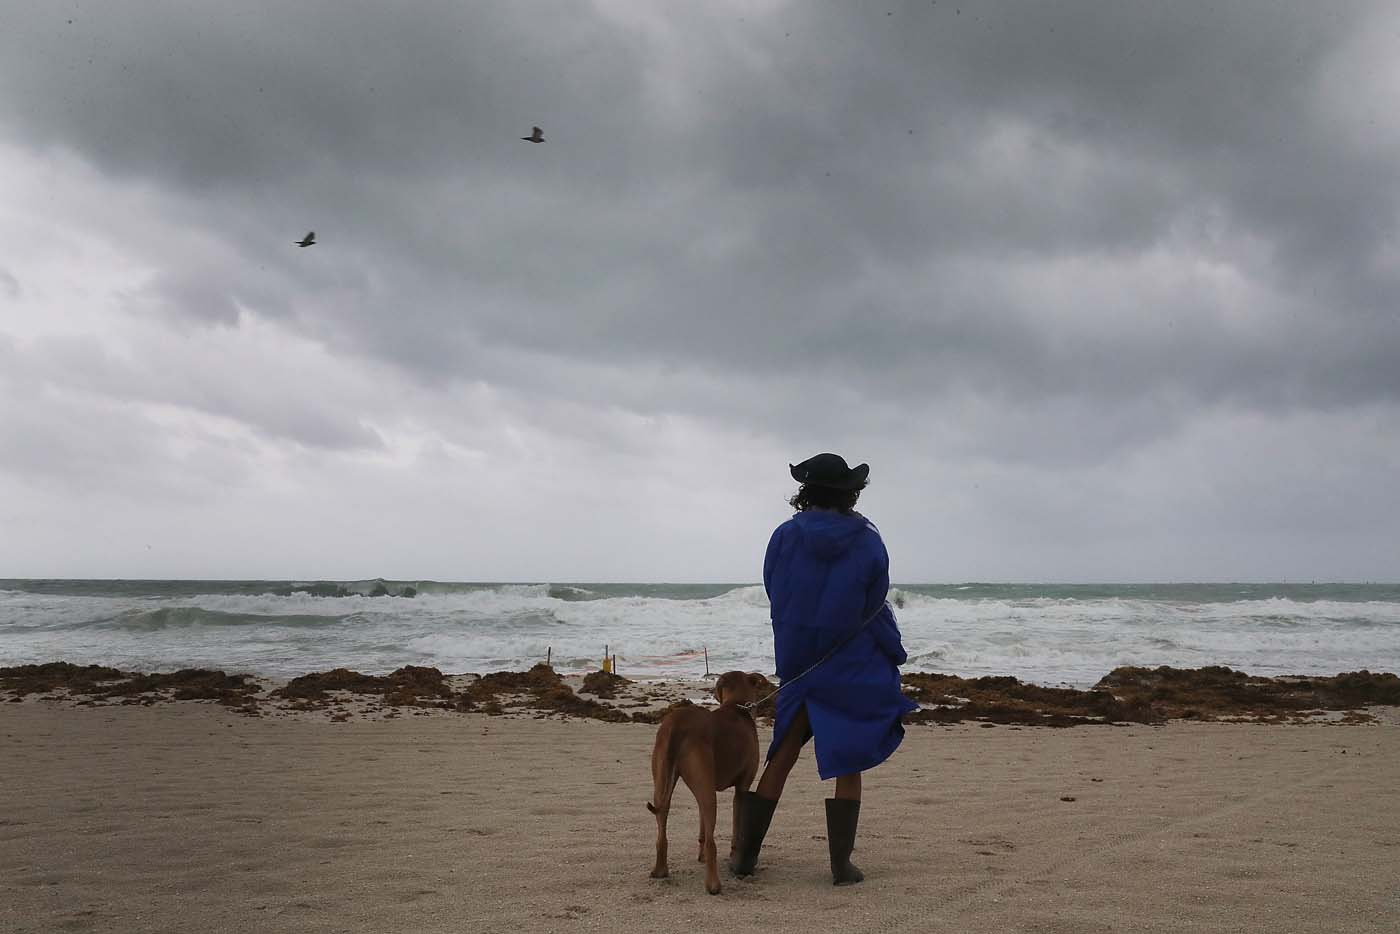 MIAMI BEACH, FL - SEPTEMBER 09: Monica Gutierrez and Tyson look out at the storm clouds and churning ocean as Hurricane Irma approaches on September 9, 2017 in Miami Beach, Florida. Florida is in the path of the Hurricane which may come ashore at category 4. Joe Raedle/Getty Images/AFP